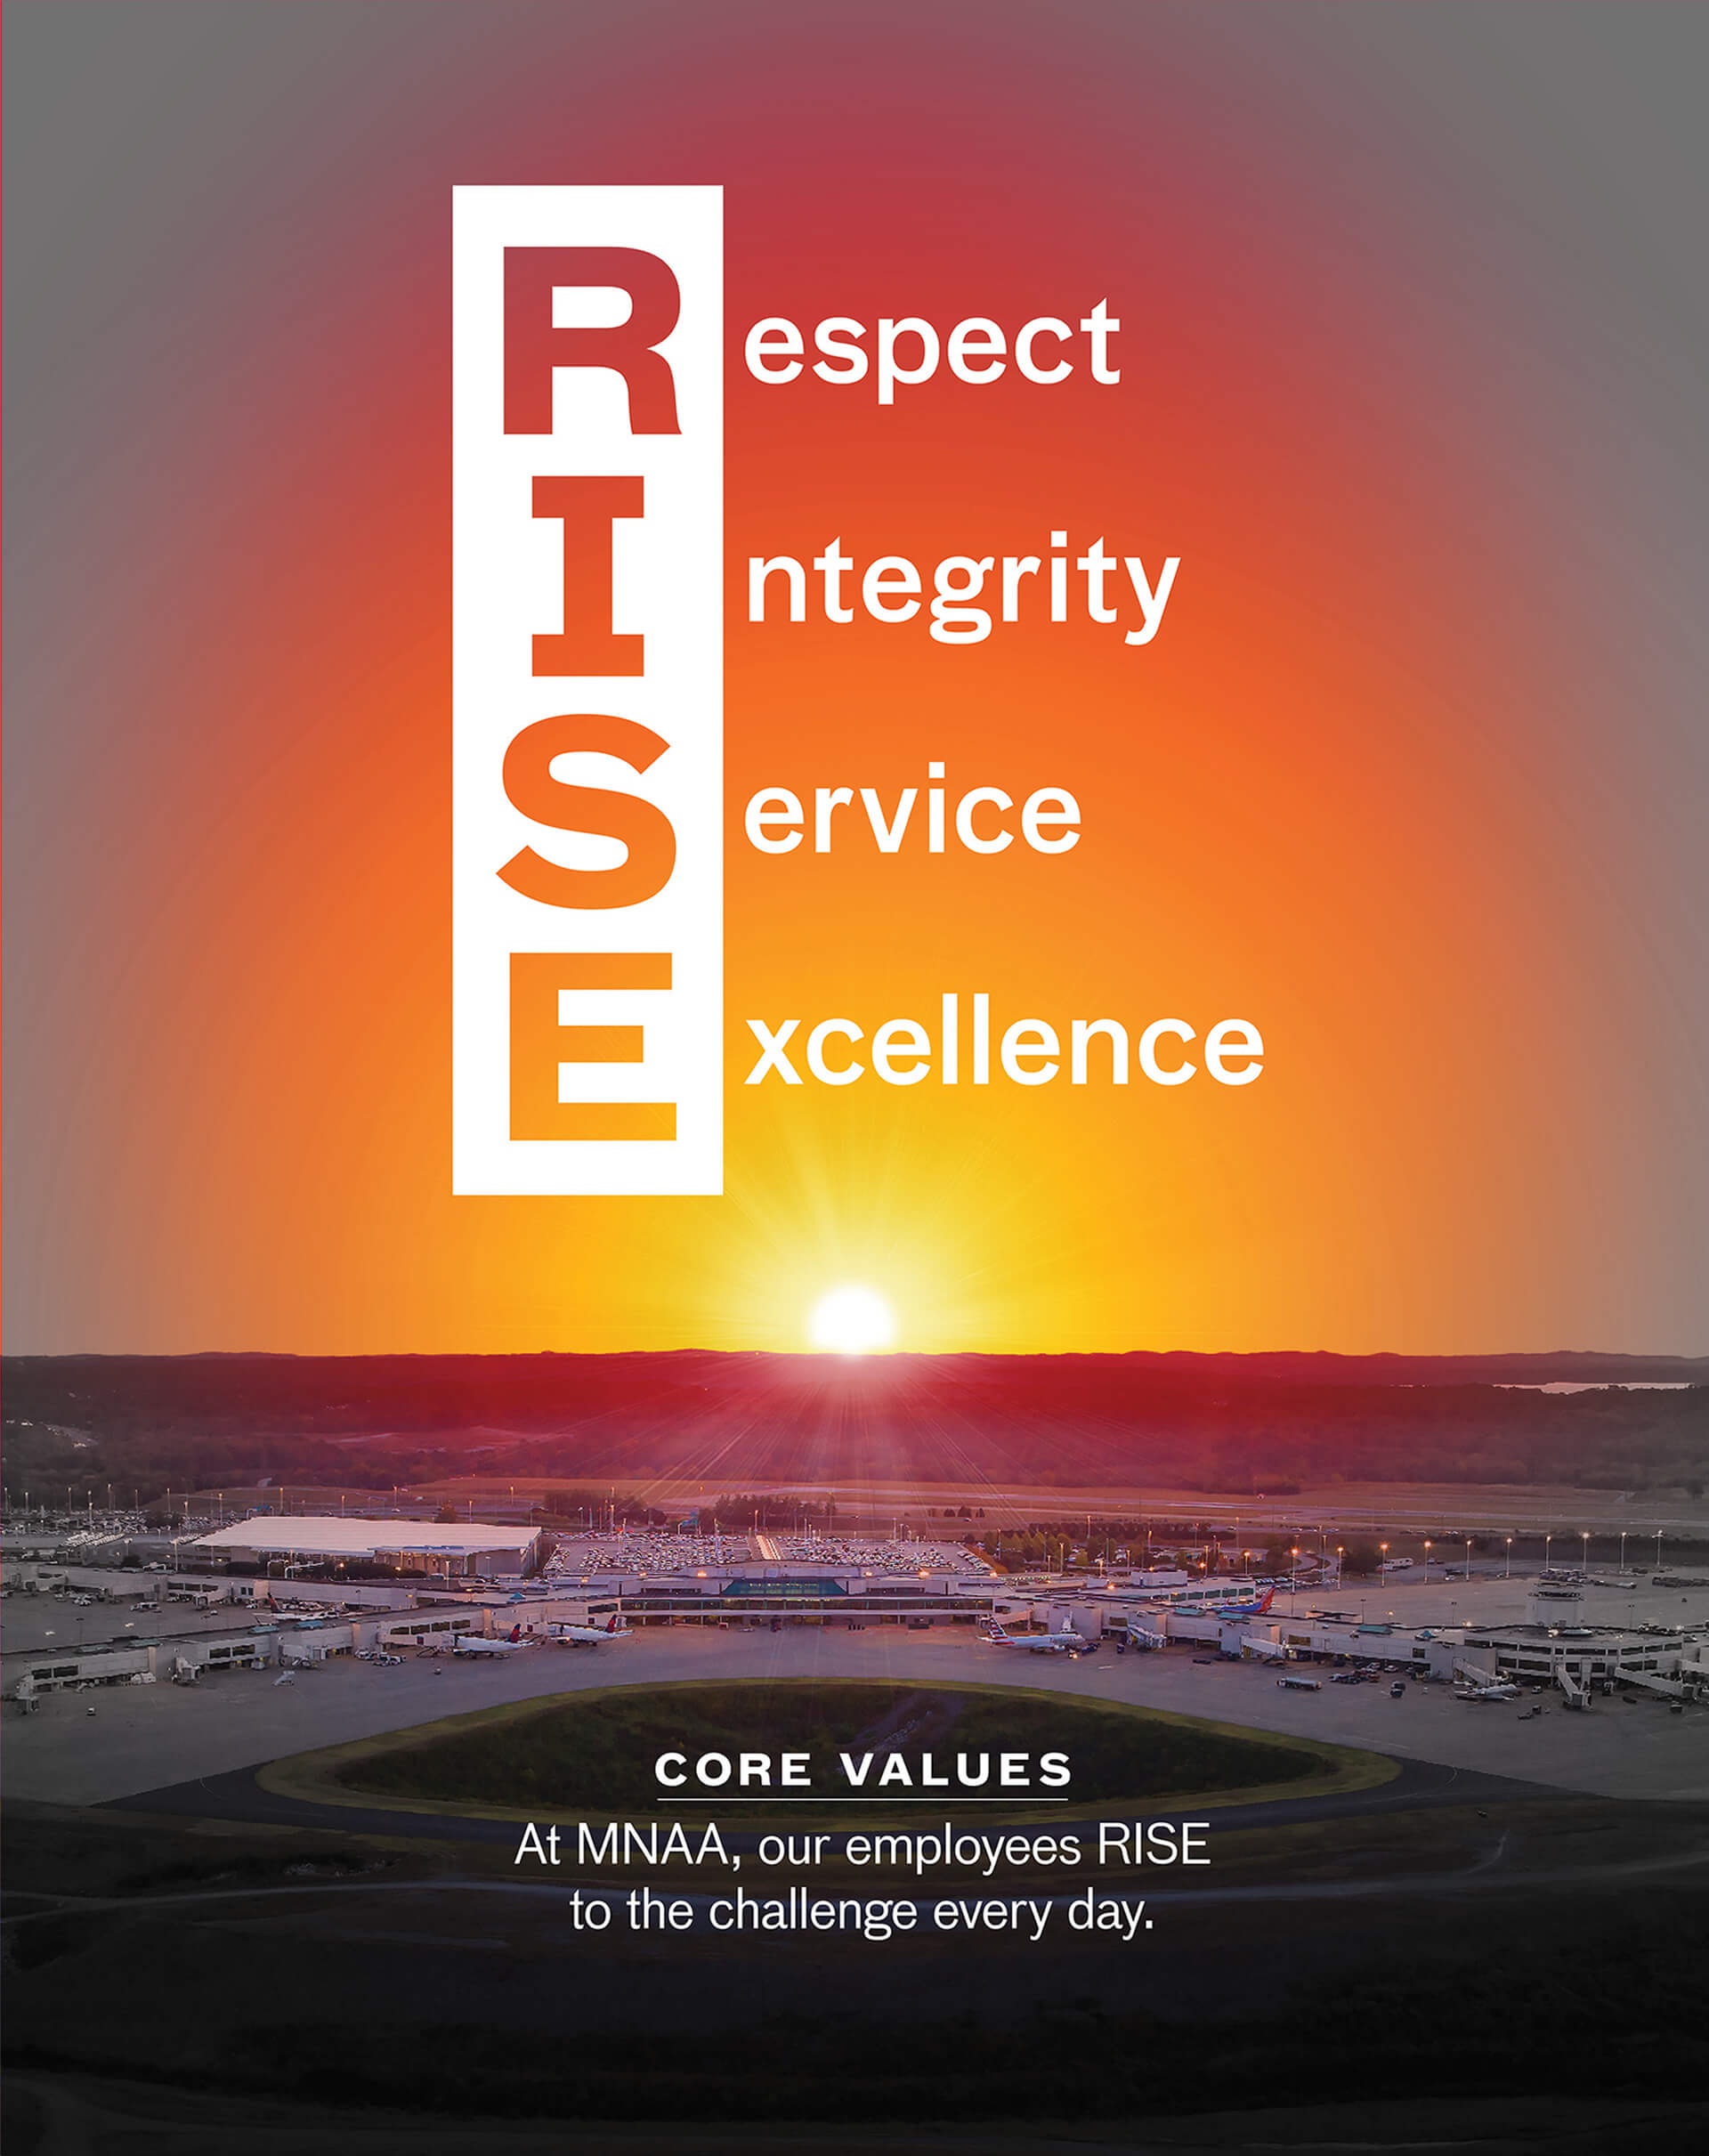 R.I.S.E. - Our Core Values - Respect, Integrity, Service, and Excellenece